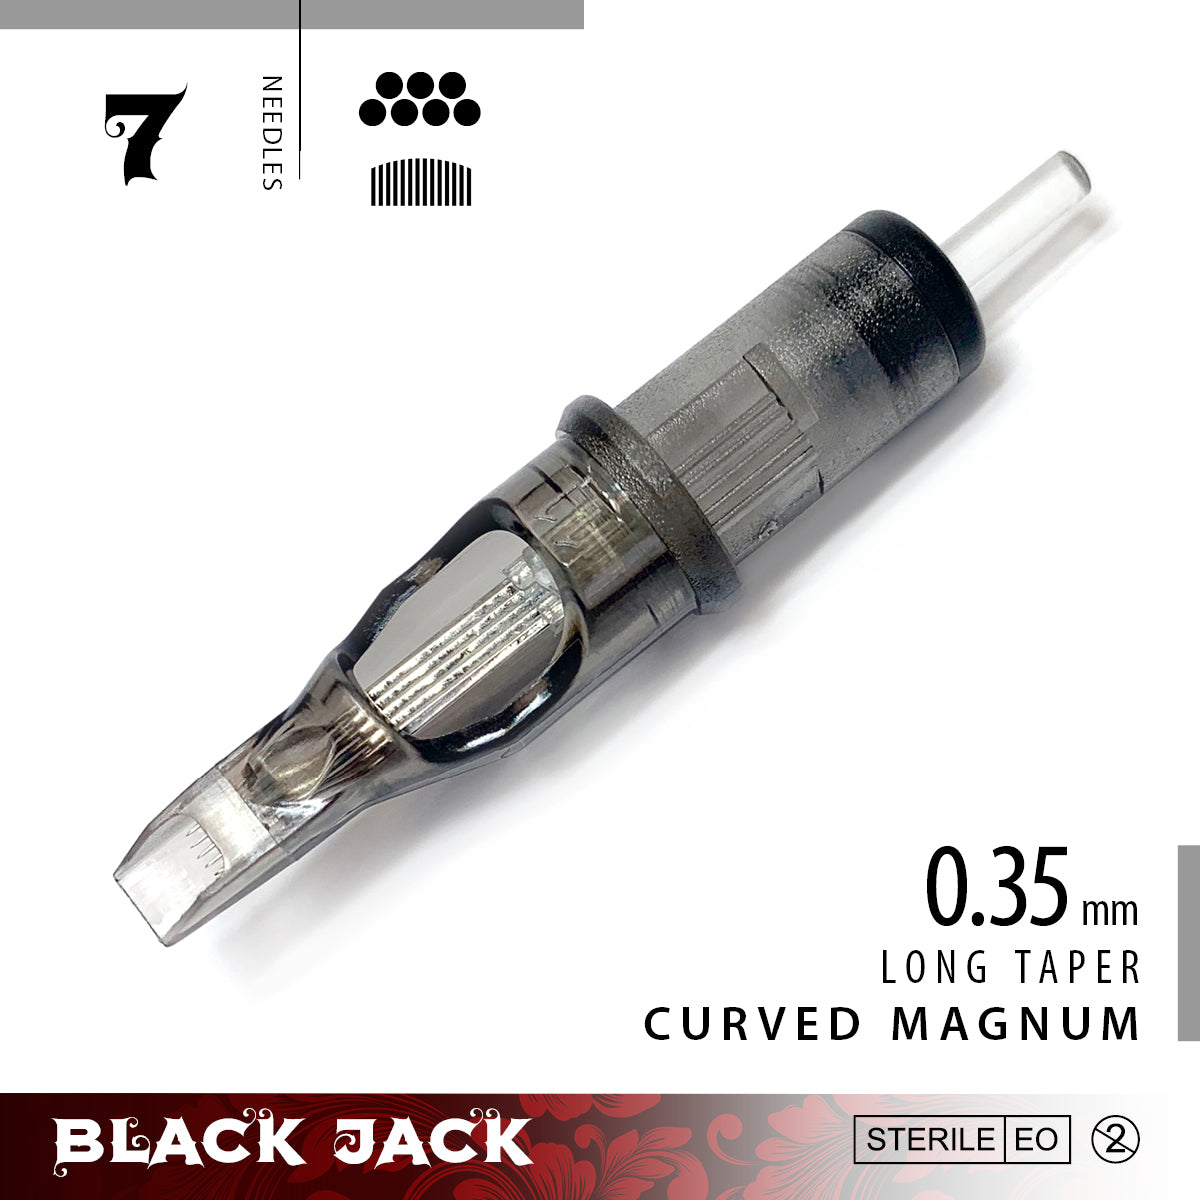 Black Jack Curved Magnum Cartridge Needles